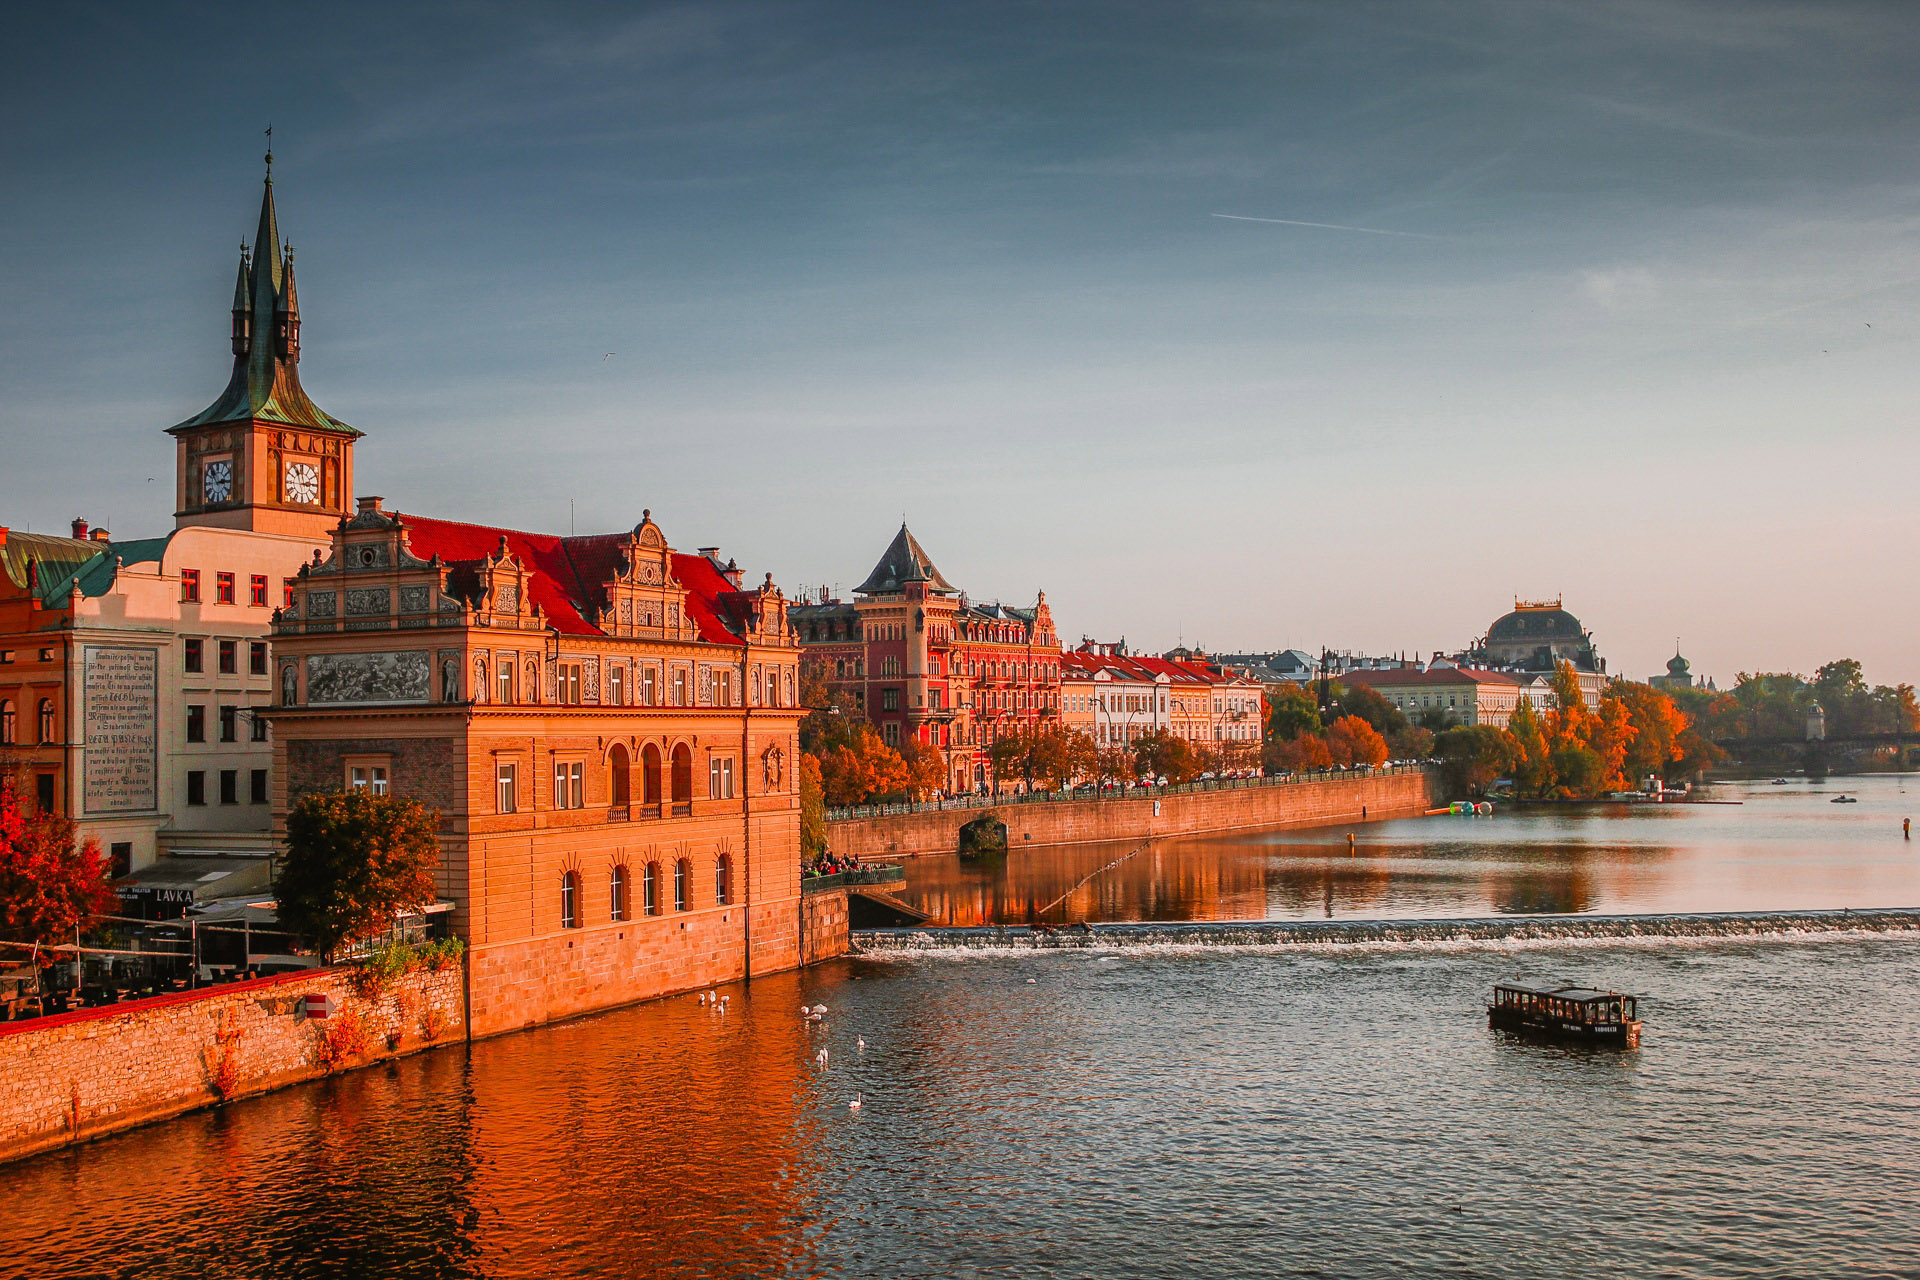 Charles Bridge, Czech Republic - Robrigo Ardilha